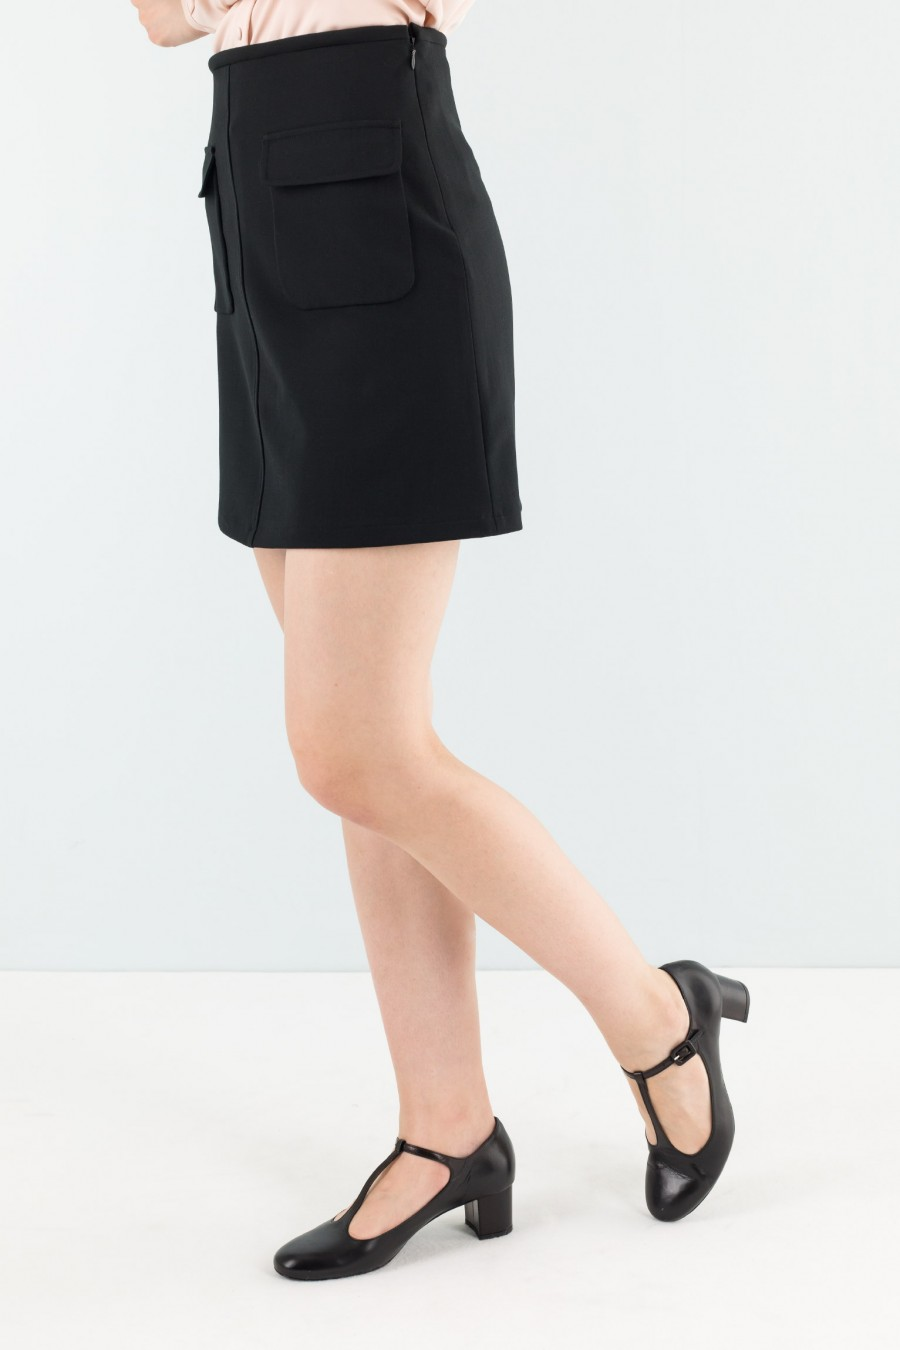 Elegant black mini skirt